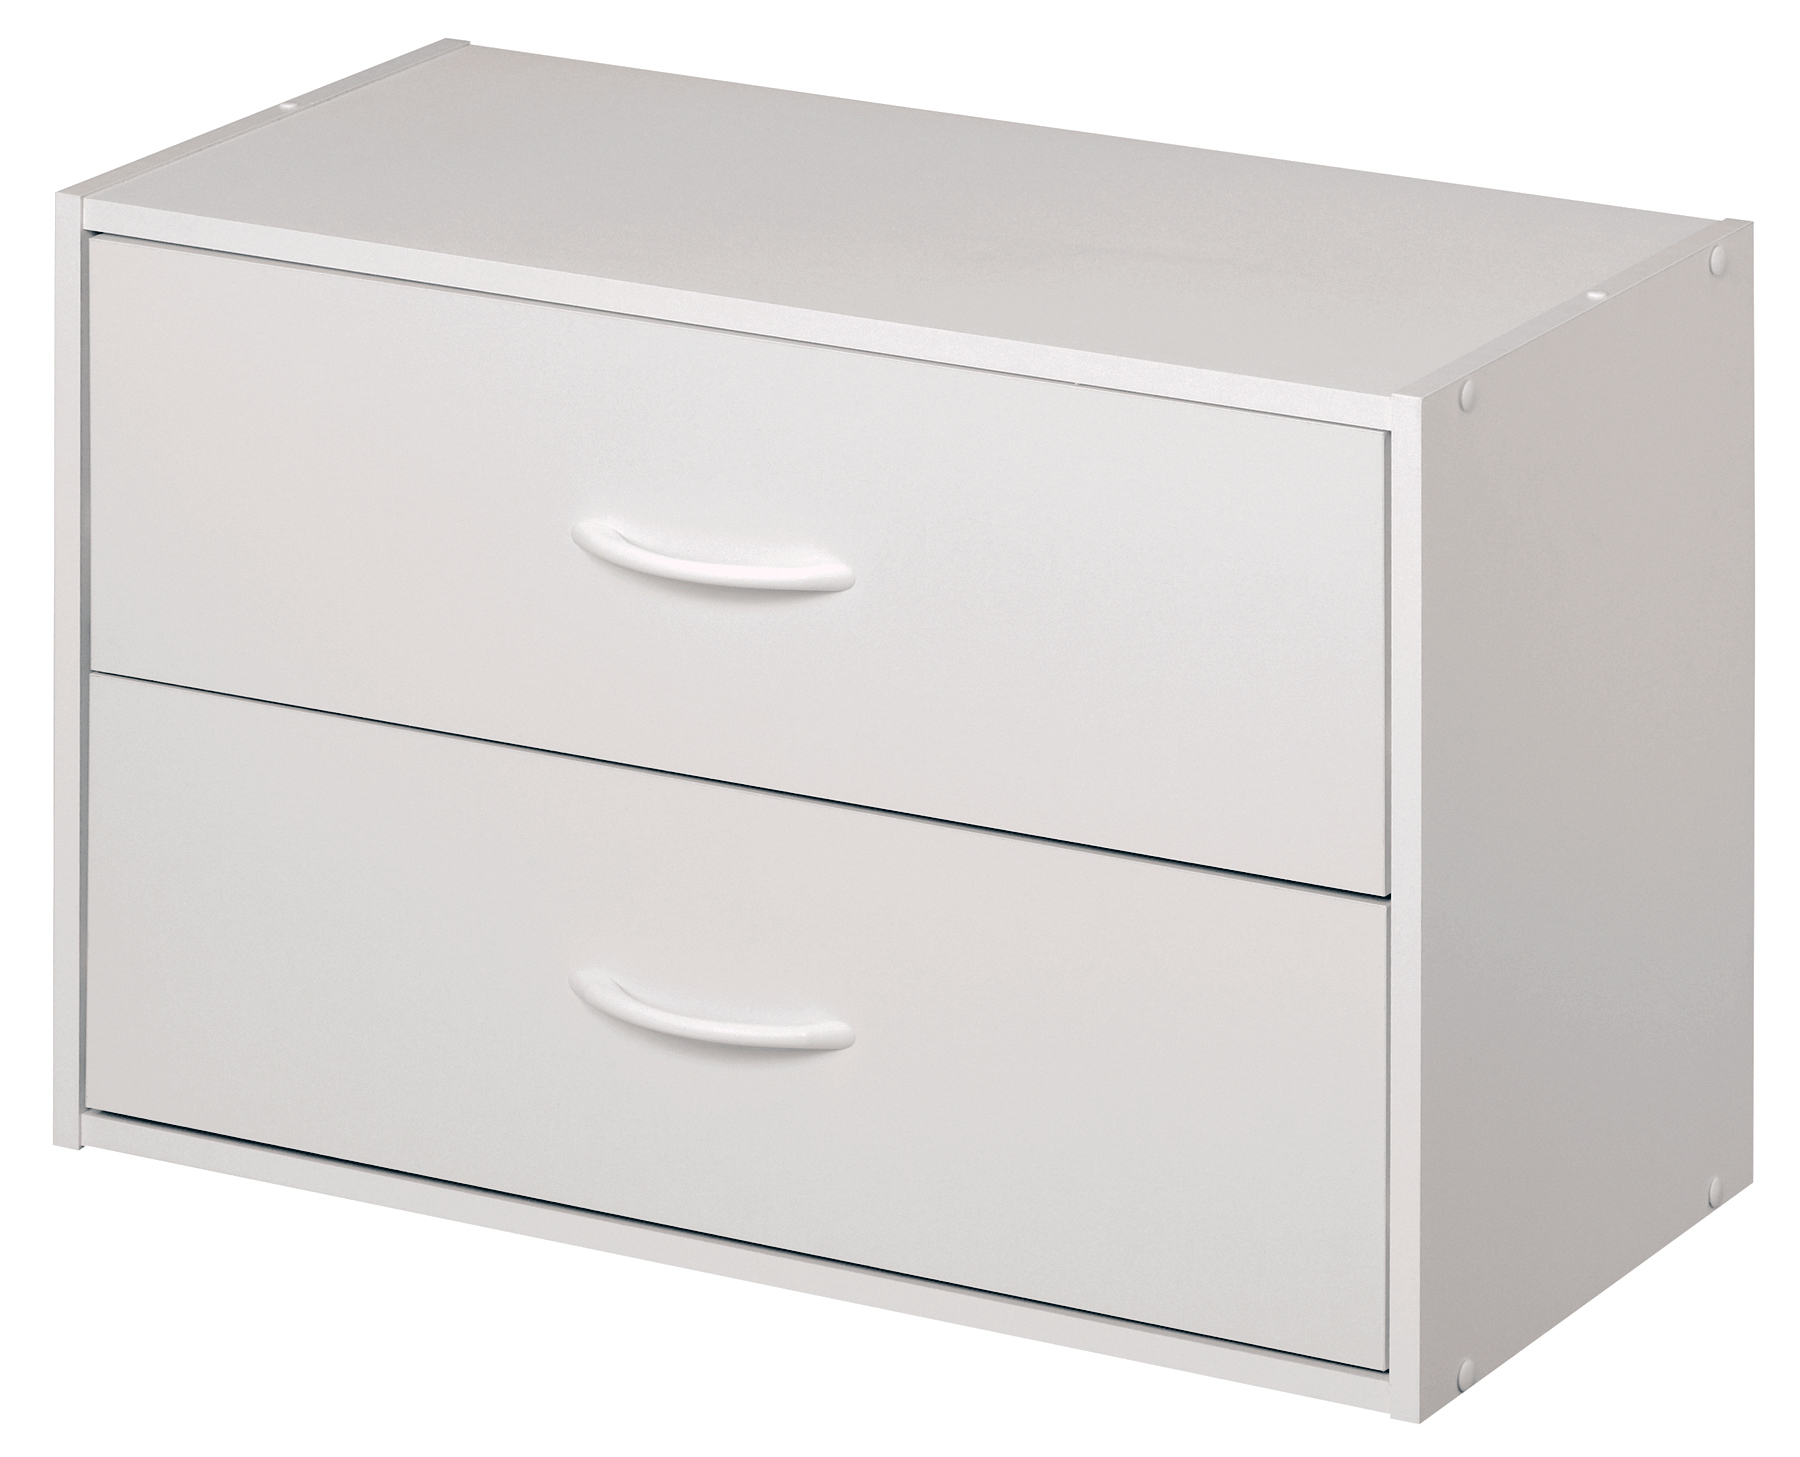 closets slides t rolling drawers closet closetmaid making with organizer for drawer maid installing ikea and